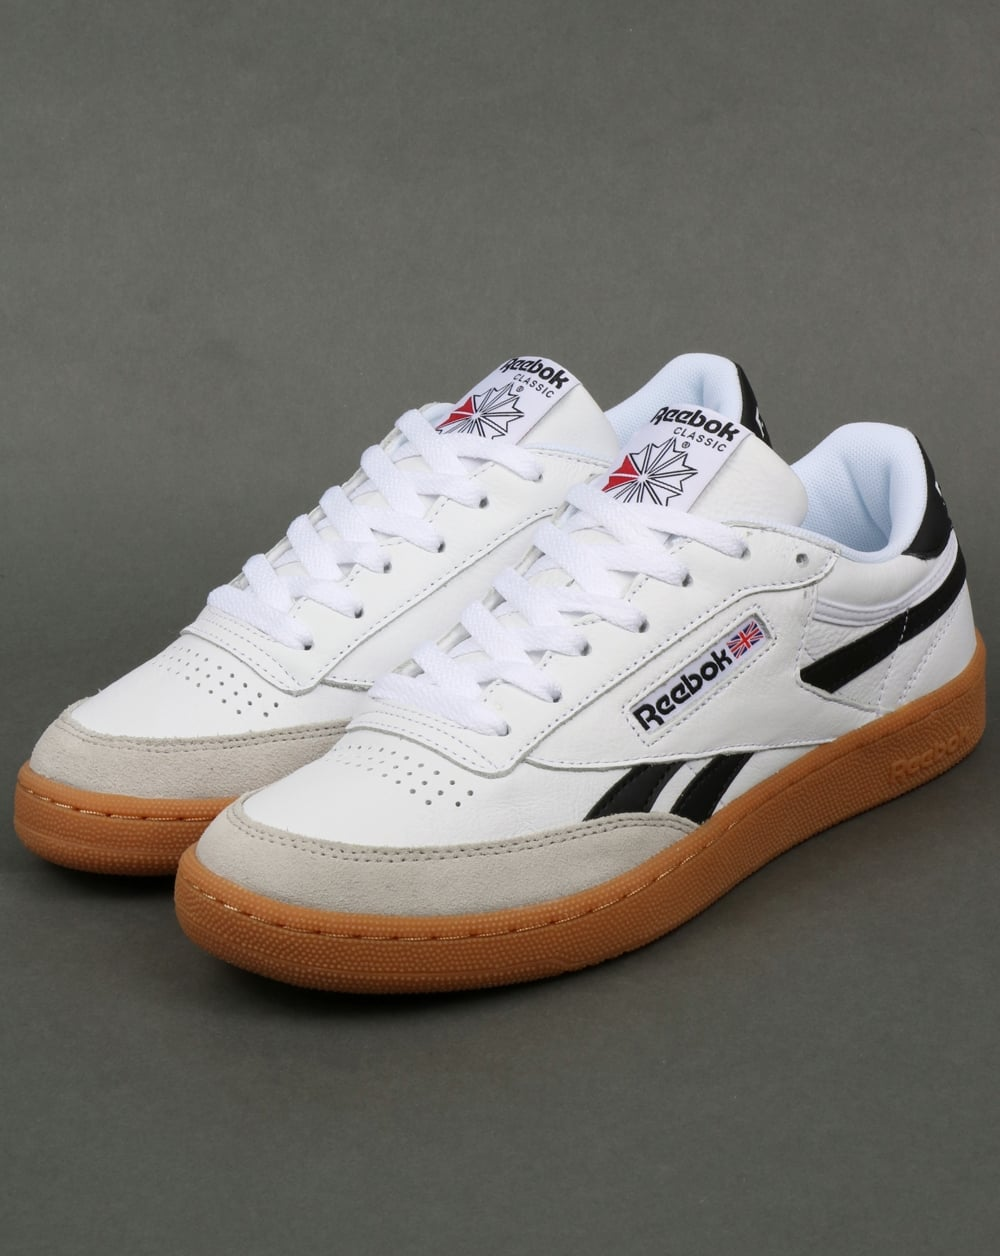 fb6ee4fe1cb Reebok Revenge Plus Gum Trainers White Snowy Grey Black